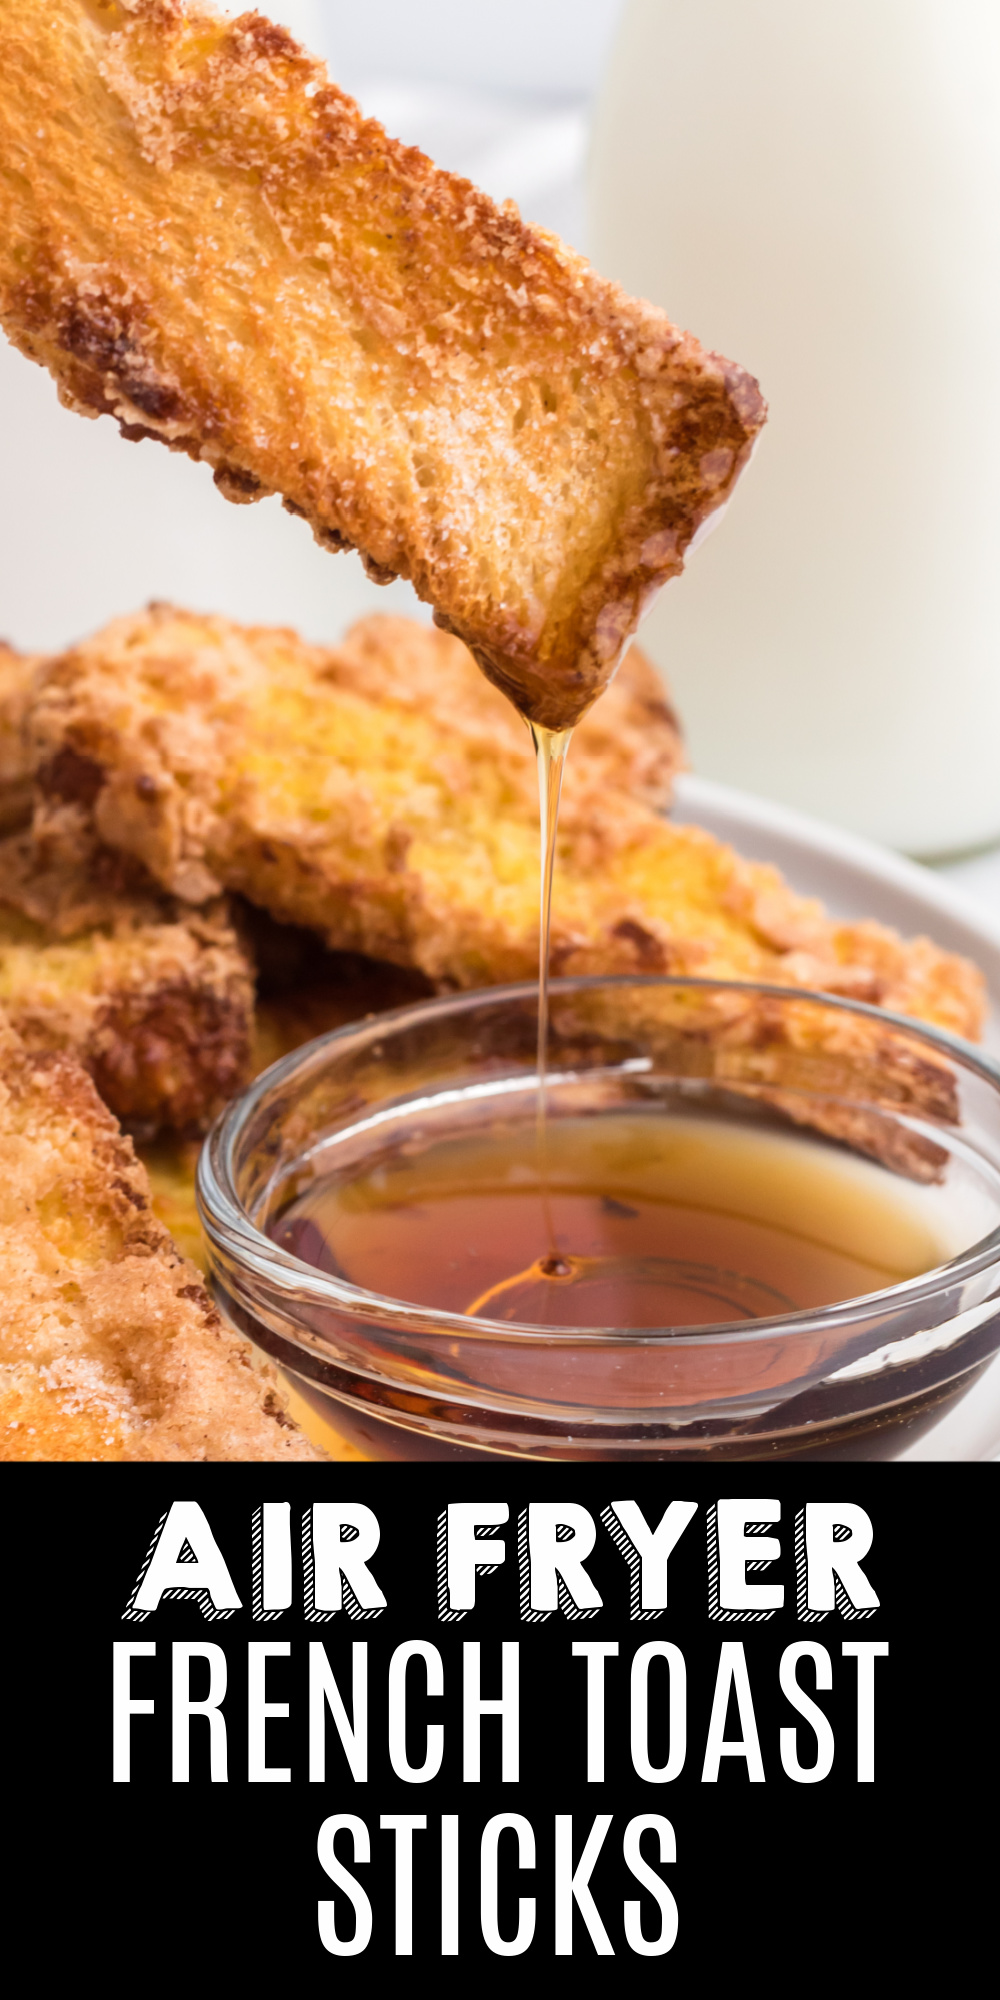 Air Fryer French Toast Sticks are one of my favorite breakfast recipes to make. This quick recipe is made with just four ingredients and done in less than 10 minutes. It's an easy recipe for French Toast that's so simple to make!